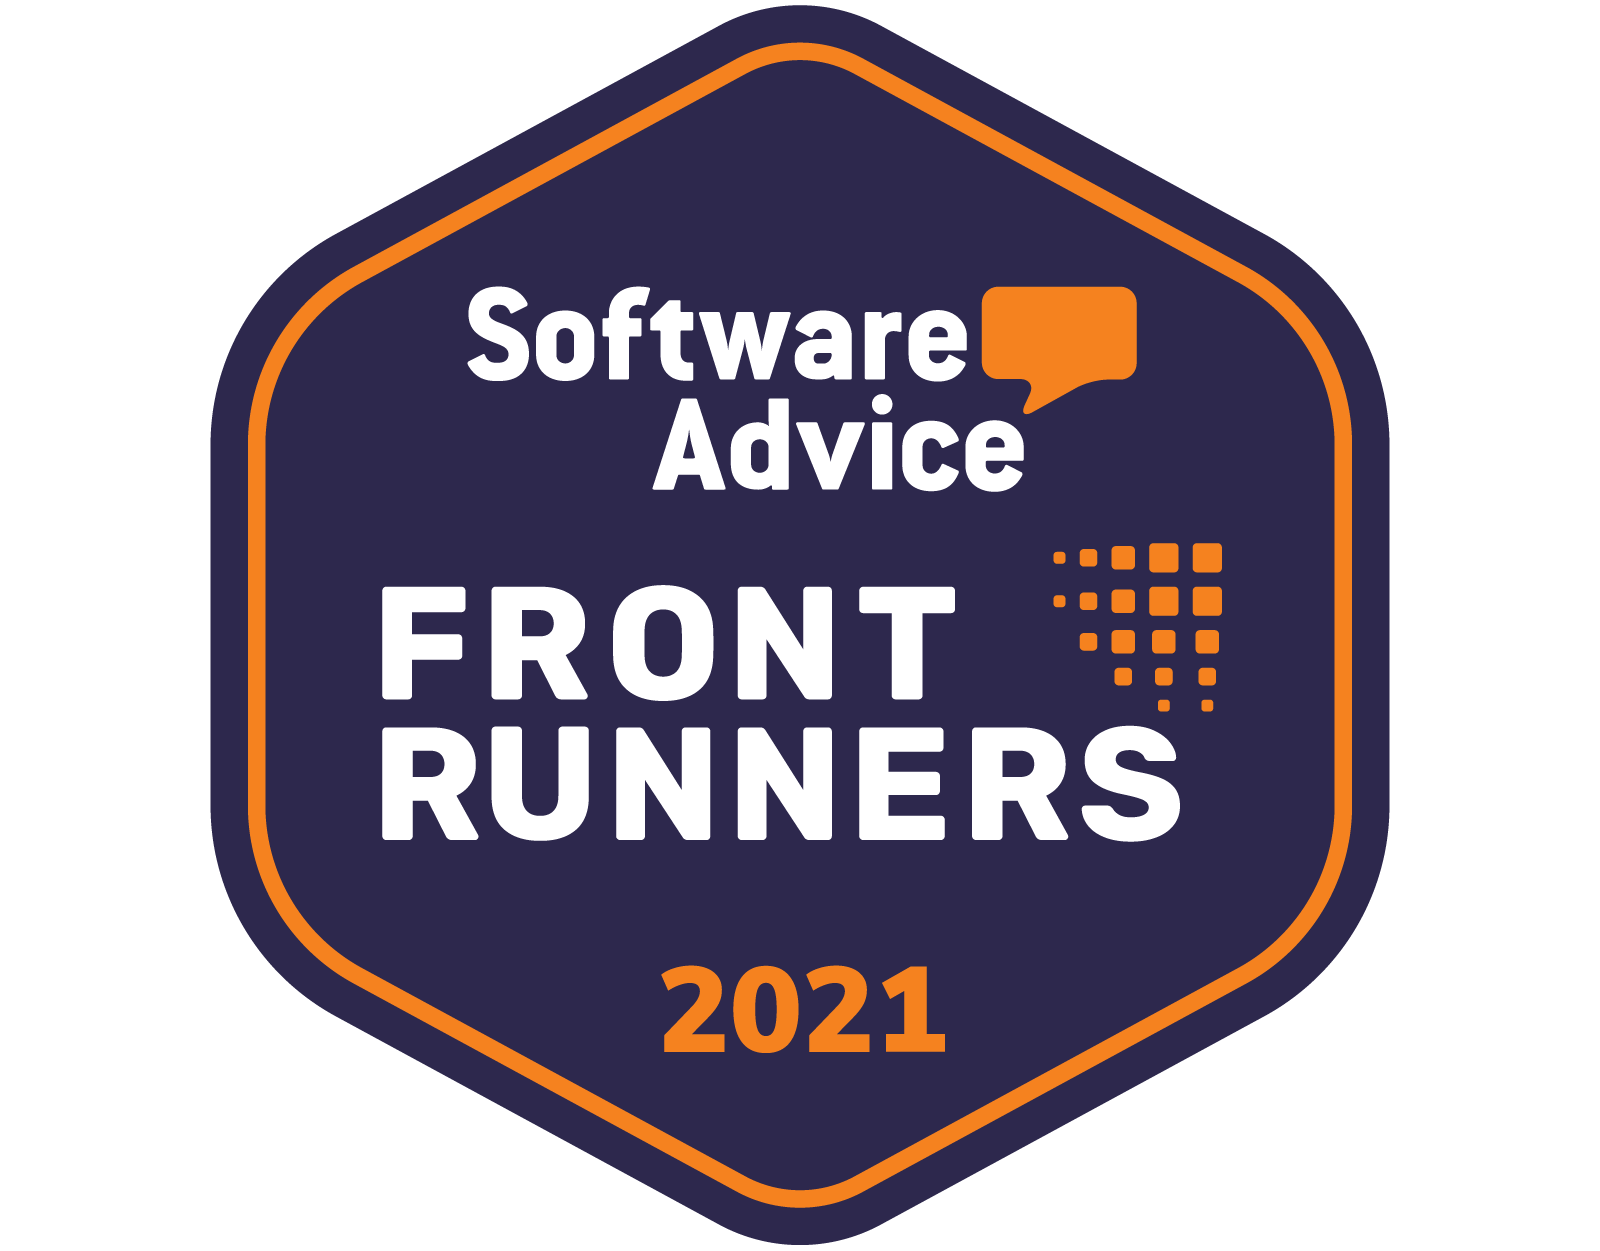 Software Advice Frontrunners for Business Management Mar-21